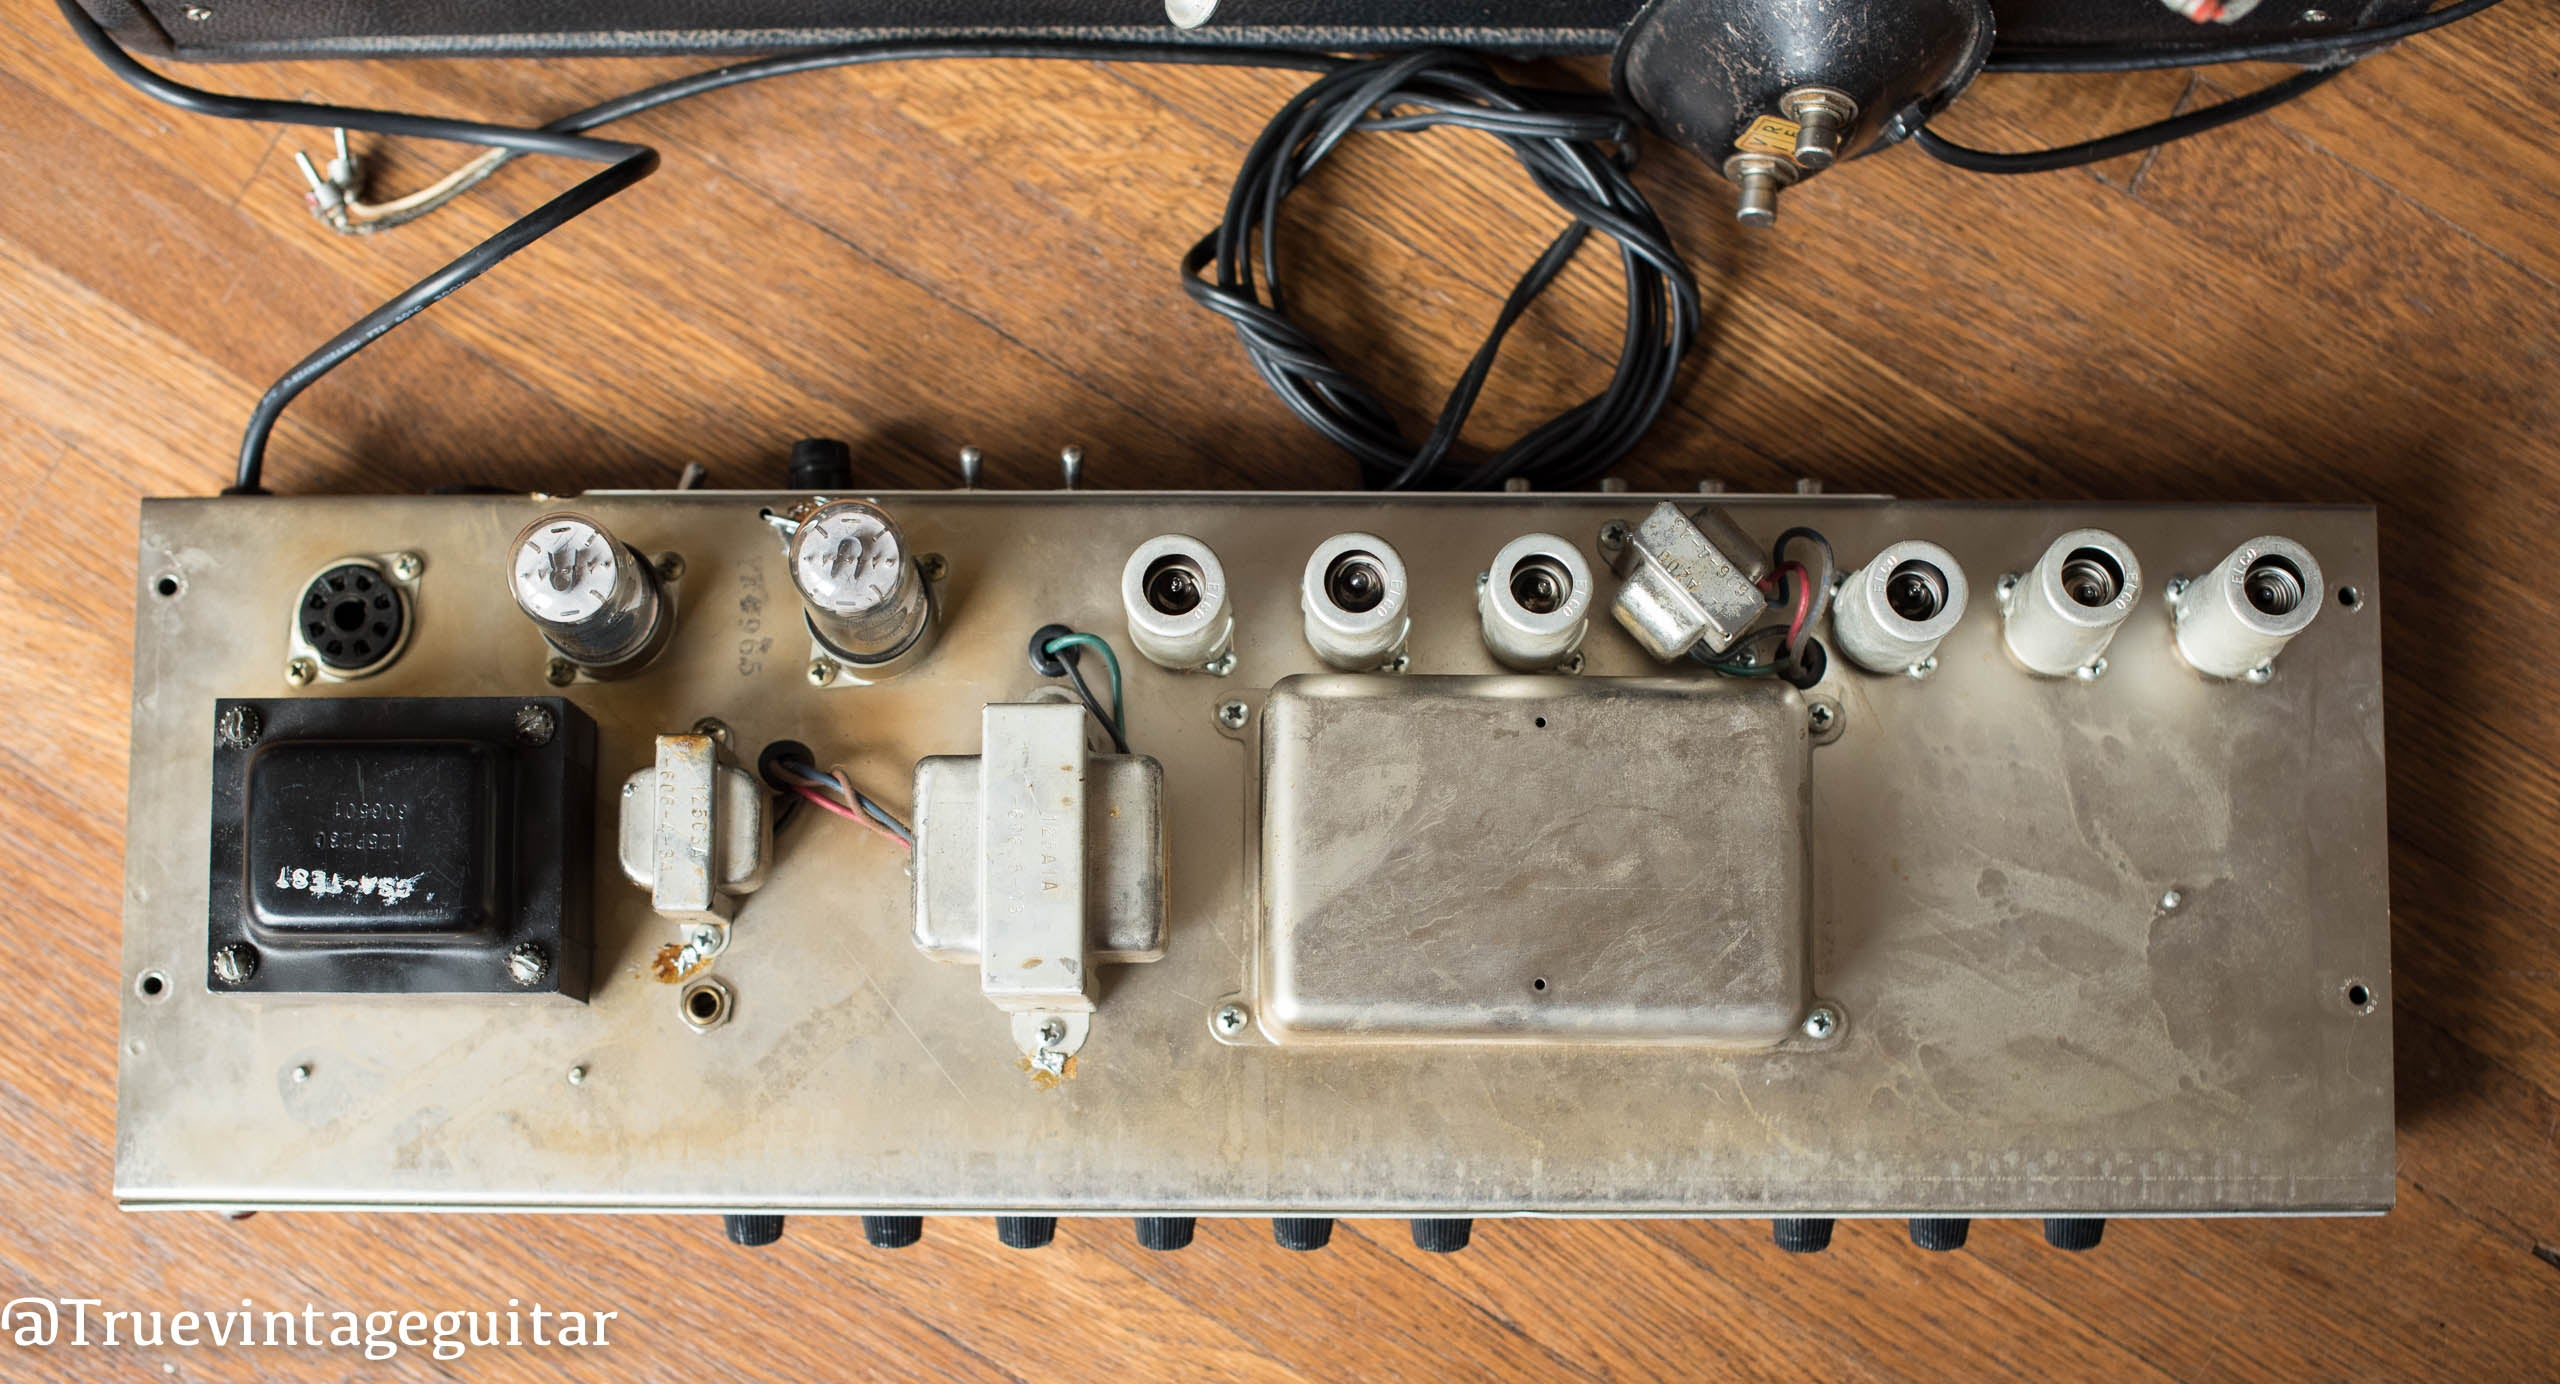 1965 Fender Deluxe Reverb amp, chassis, transformers